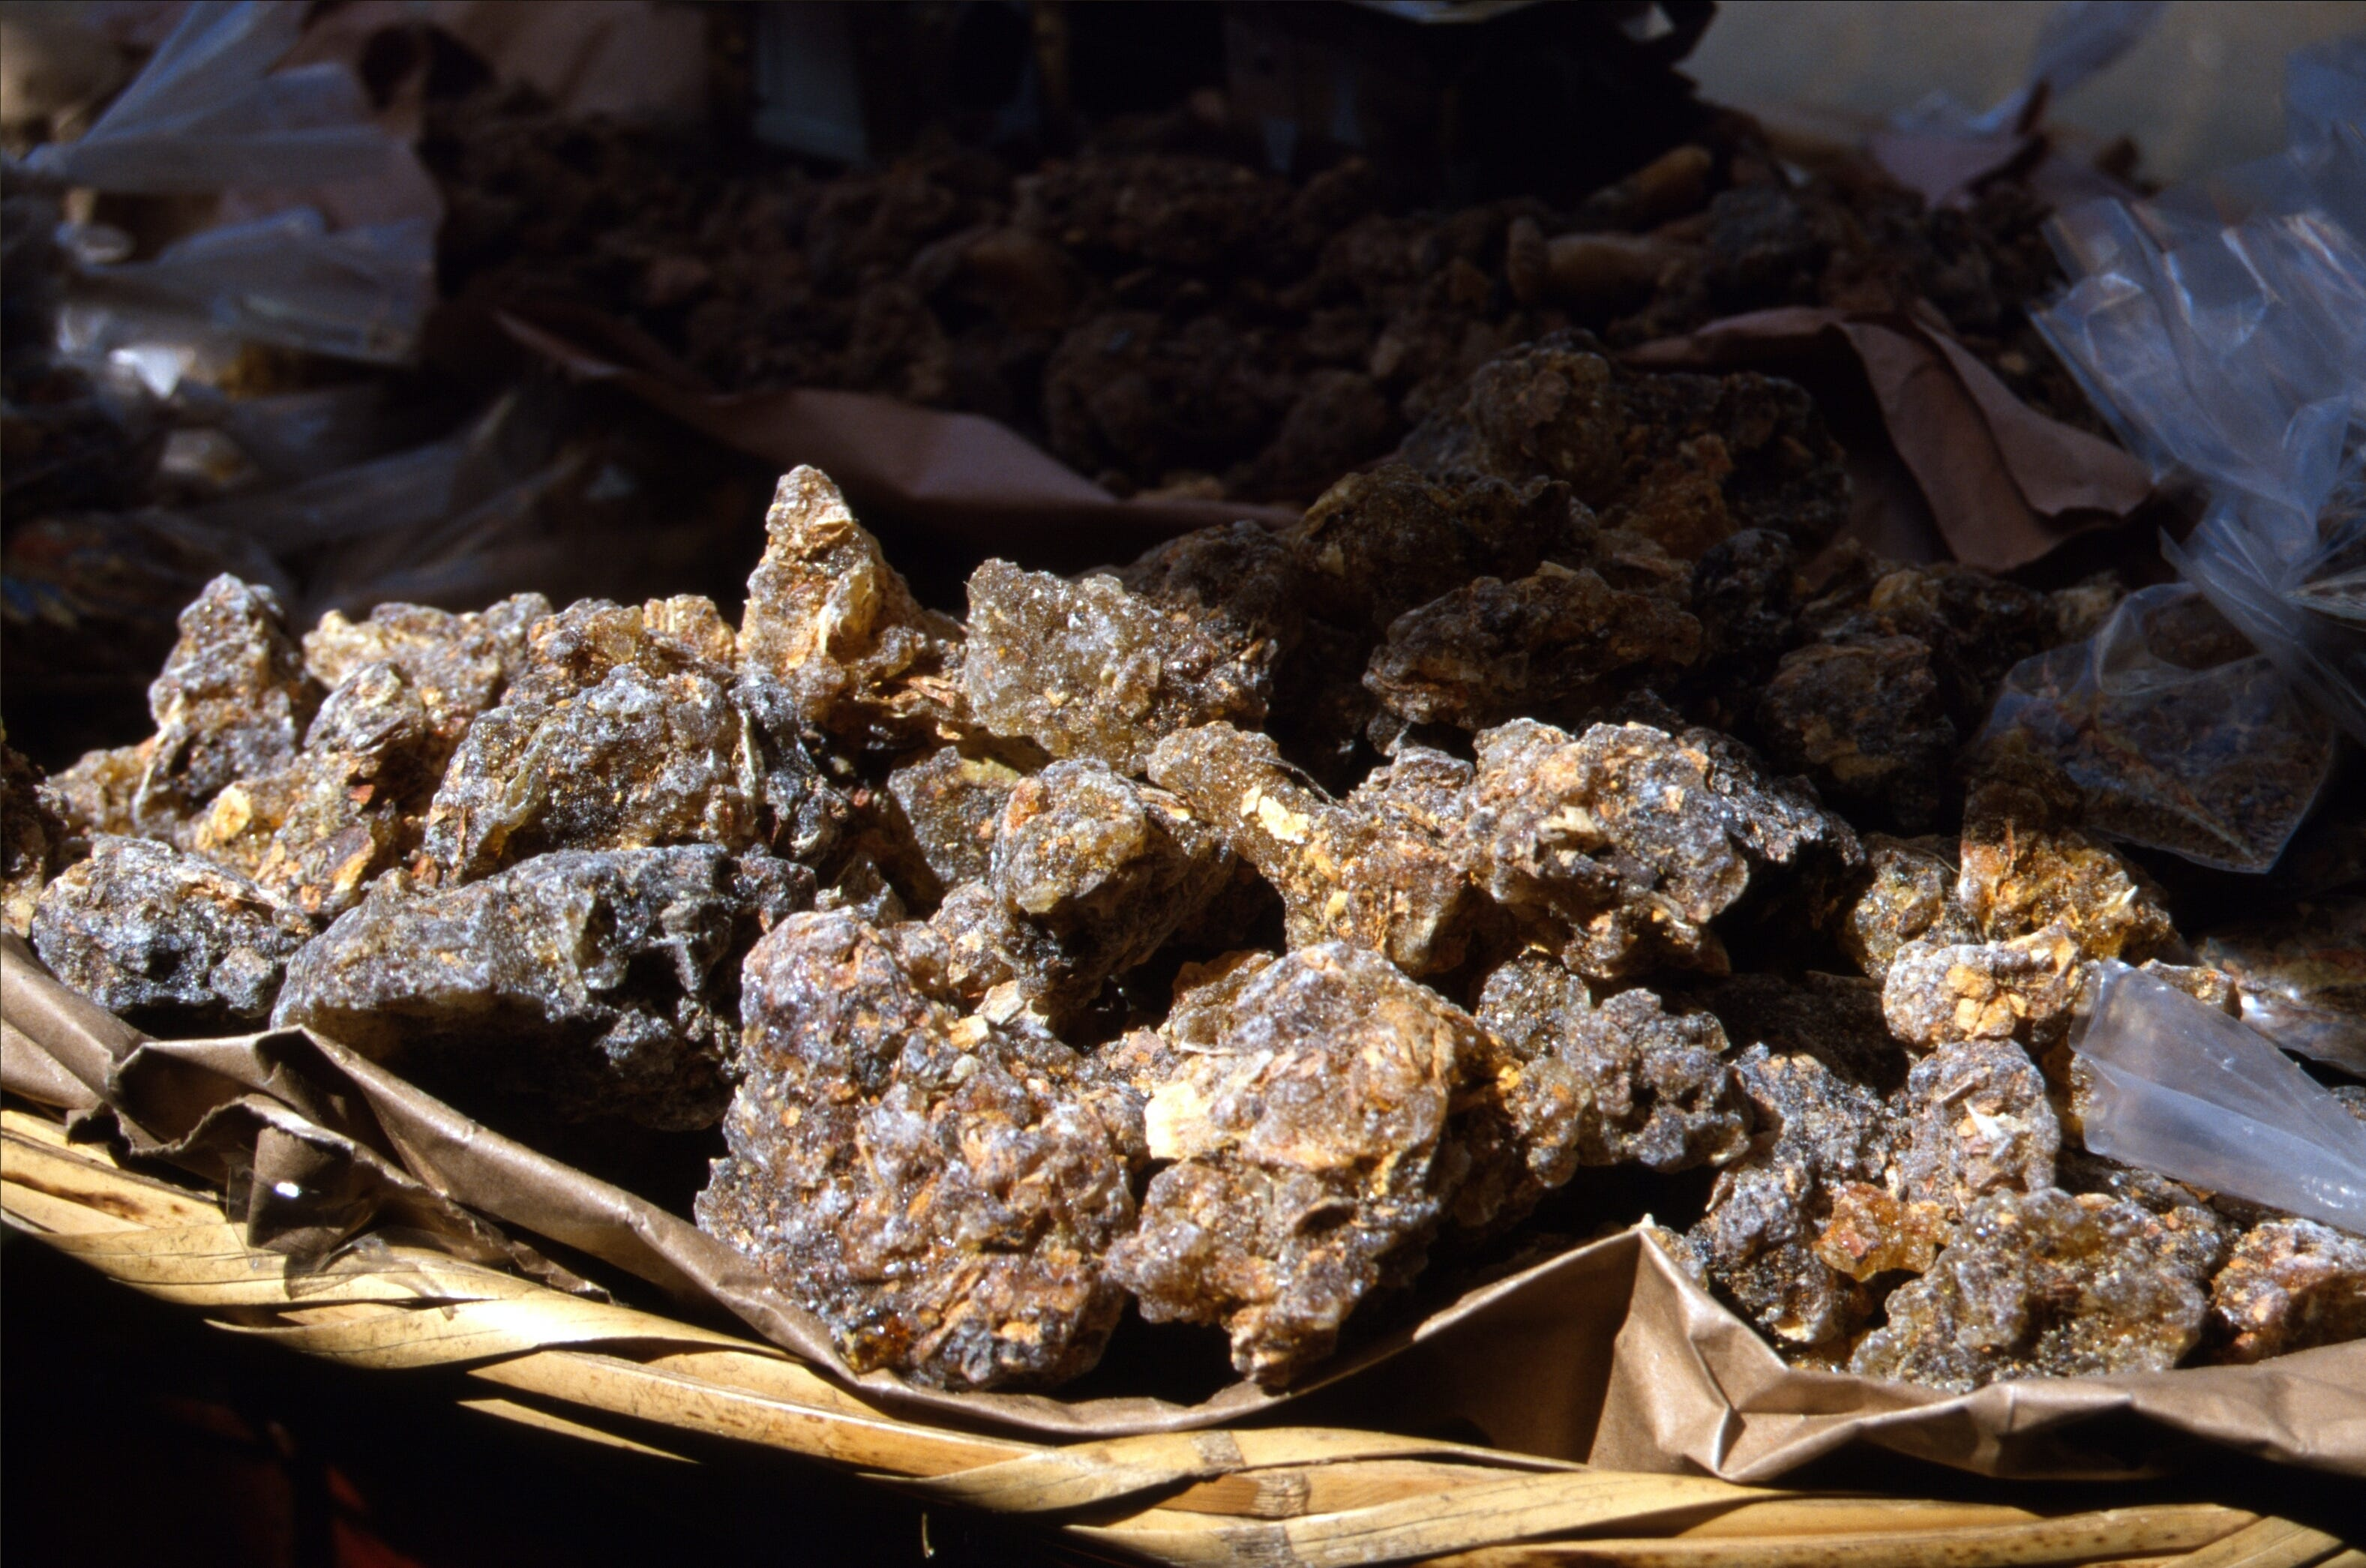 Copal The Incense Of Ancient Mexico